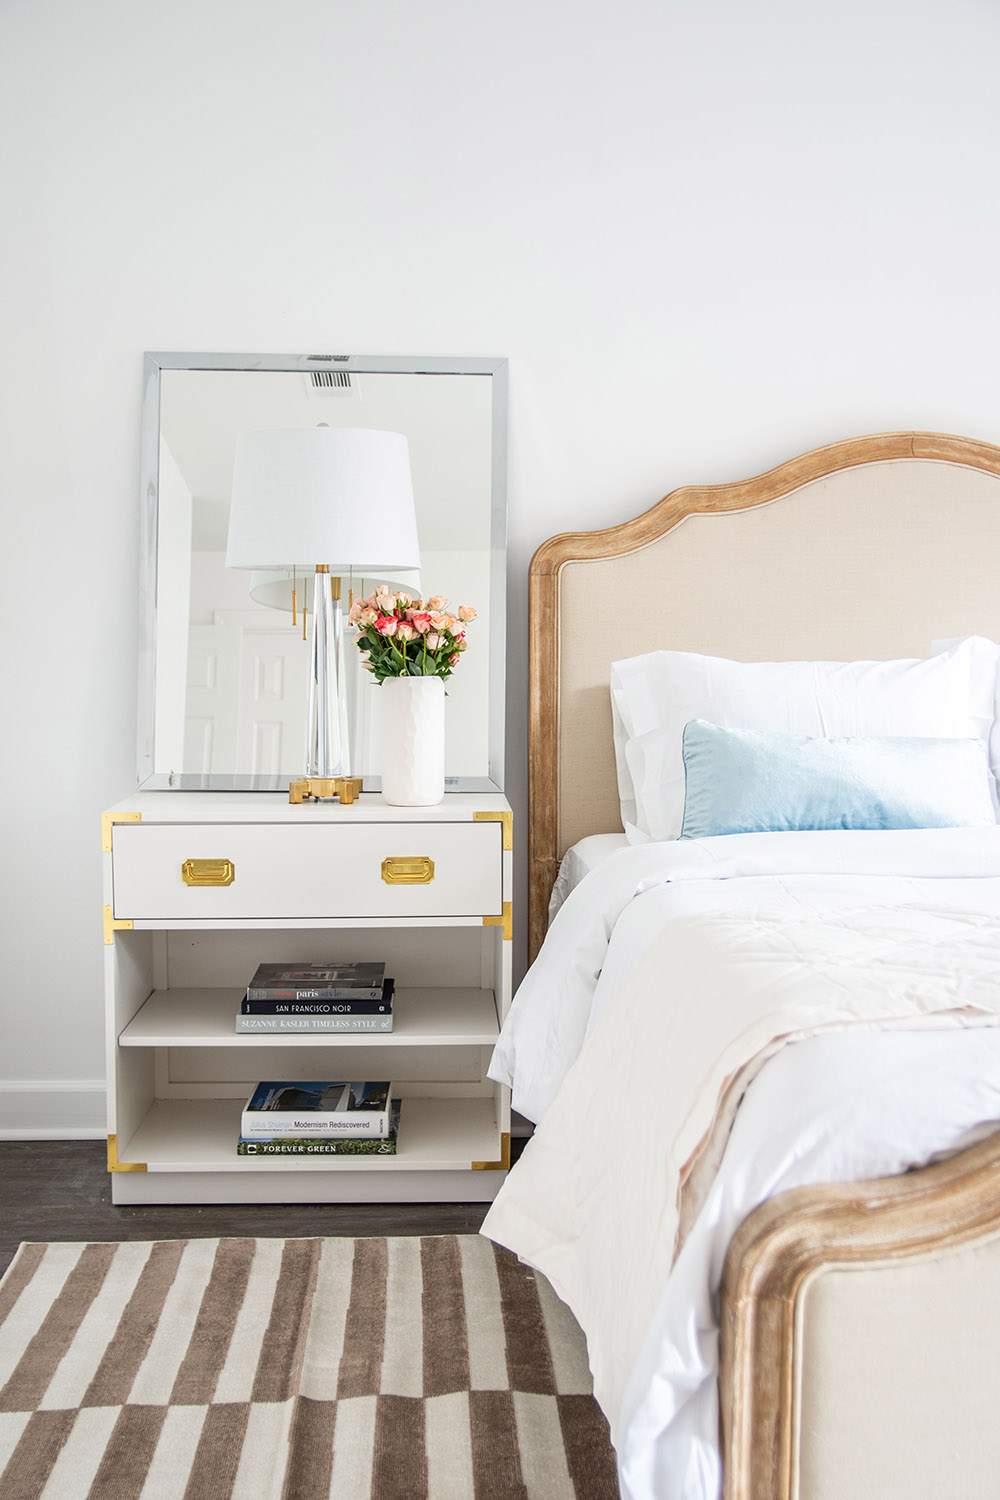 A bedroom scene featuring a bed and nightstand with a lamp and flowers.